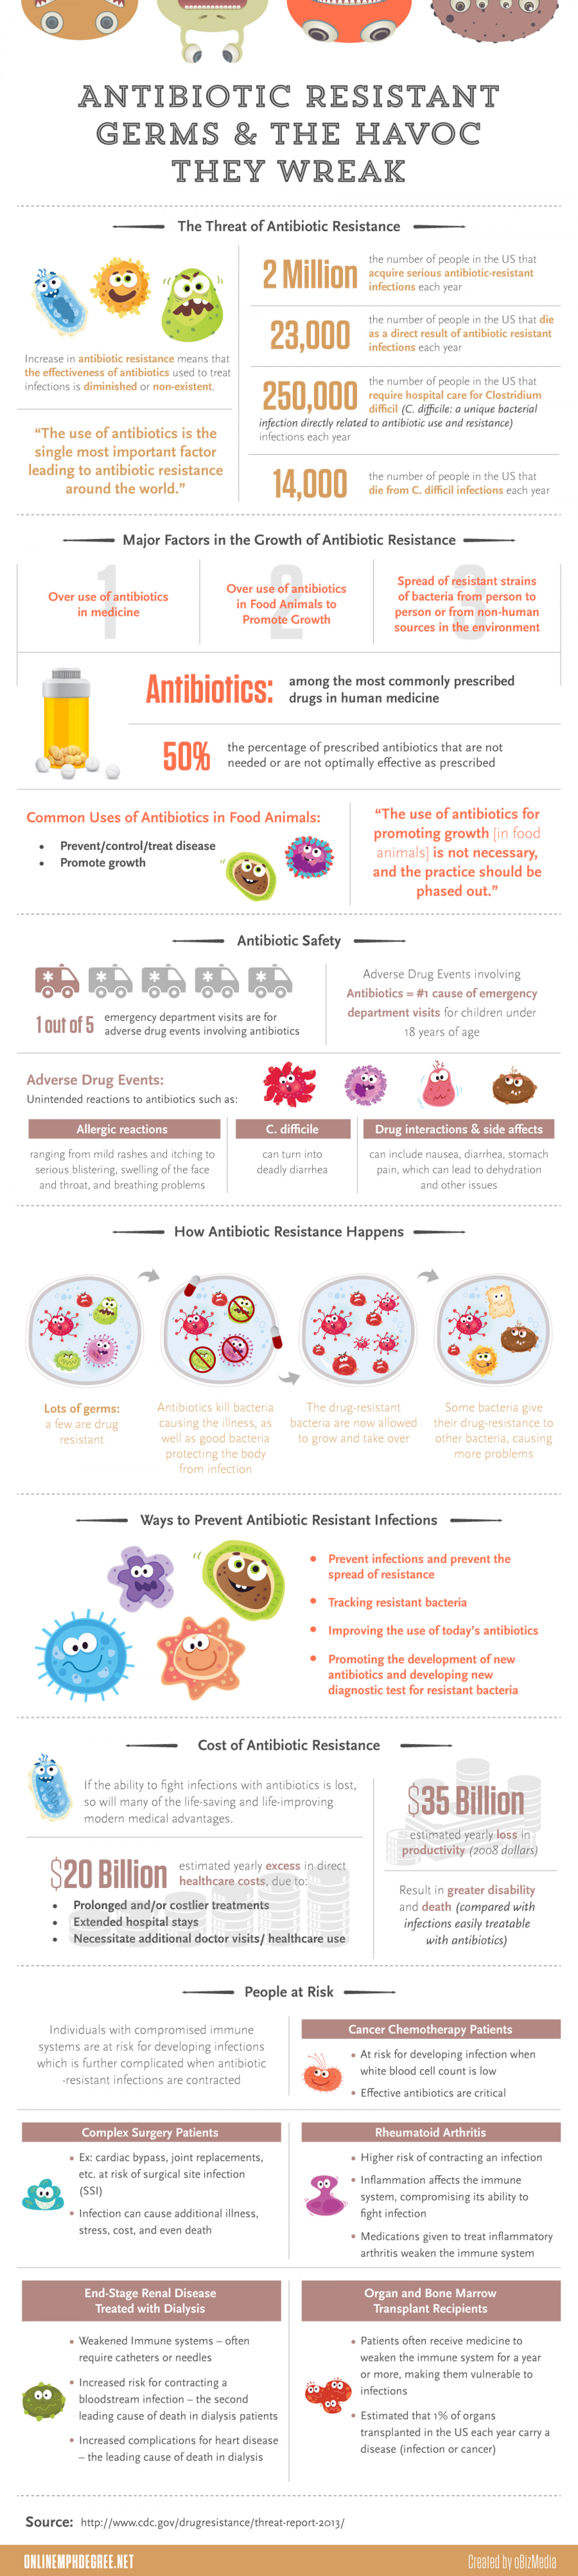 Antibiotic Resistant Germs & The Havoc They Wreak Infographic